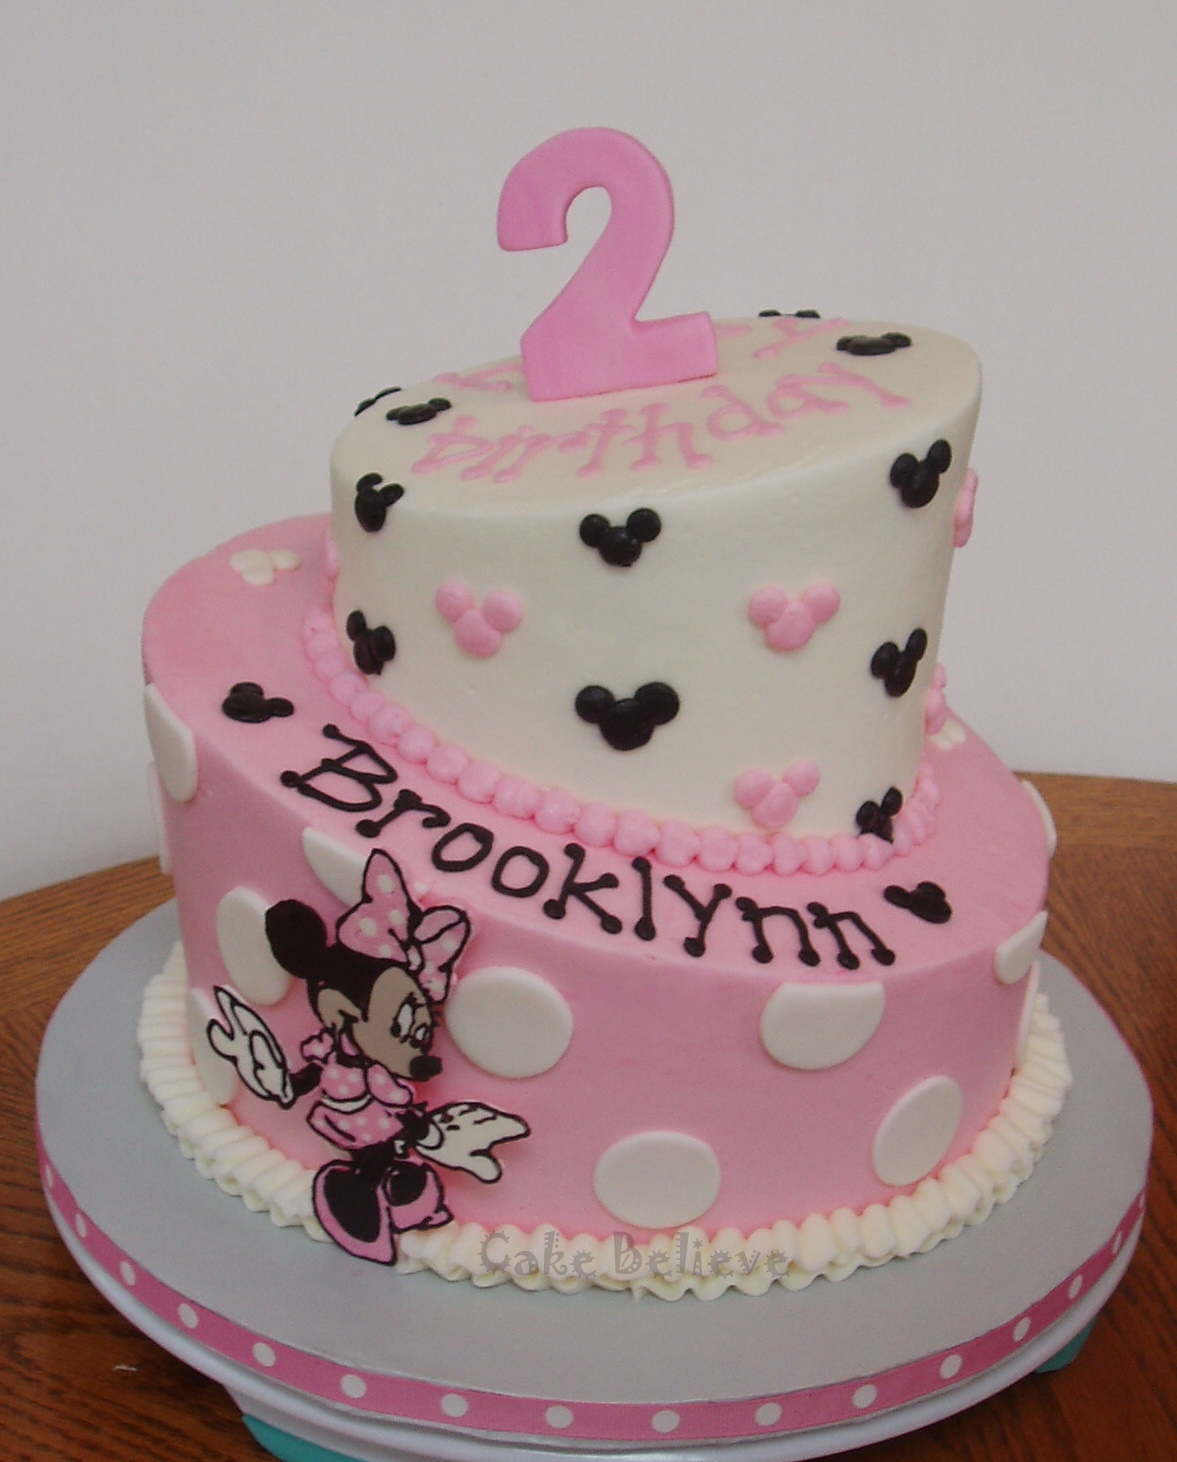 Cake Believe: Minnie Mouse goes Topsy Turvy!